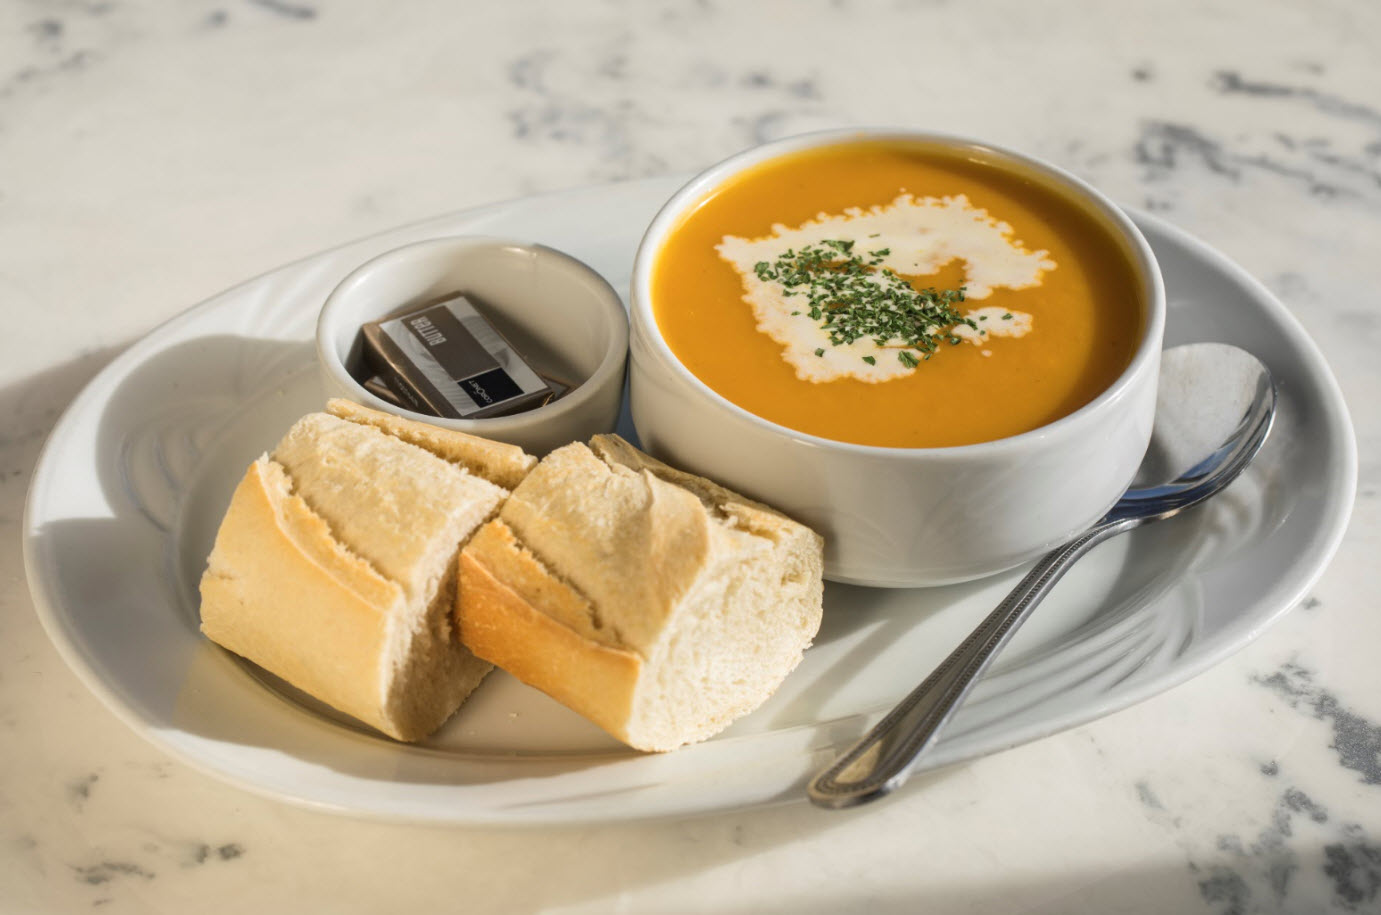 Freshly Made Soup of the Day at The Lobster Pot (Please Note: This changes regularly)